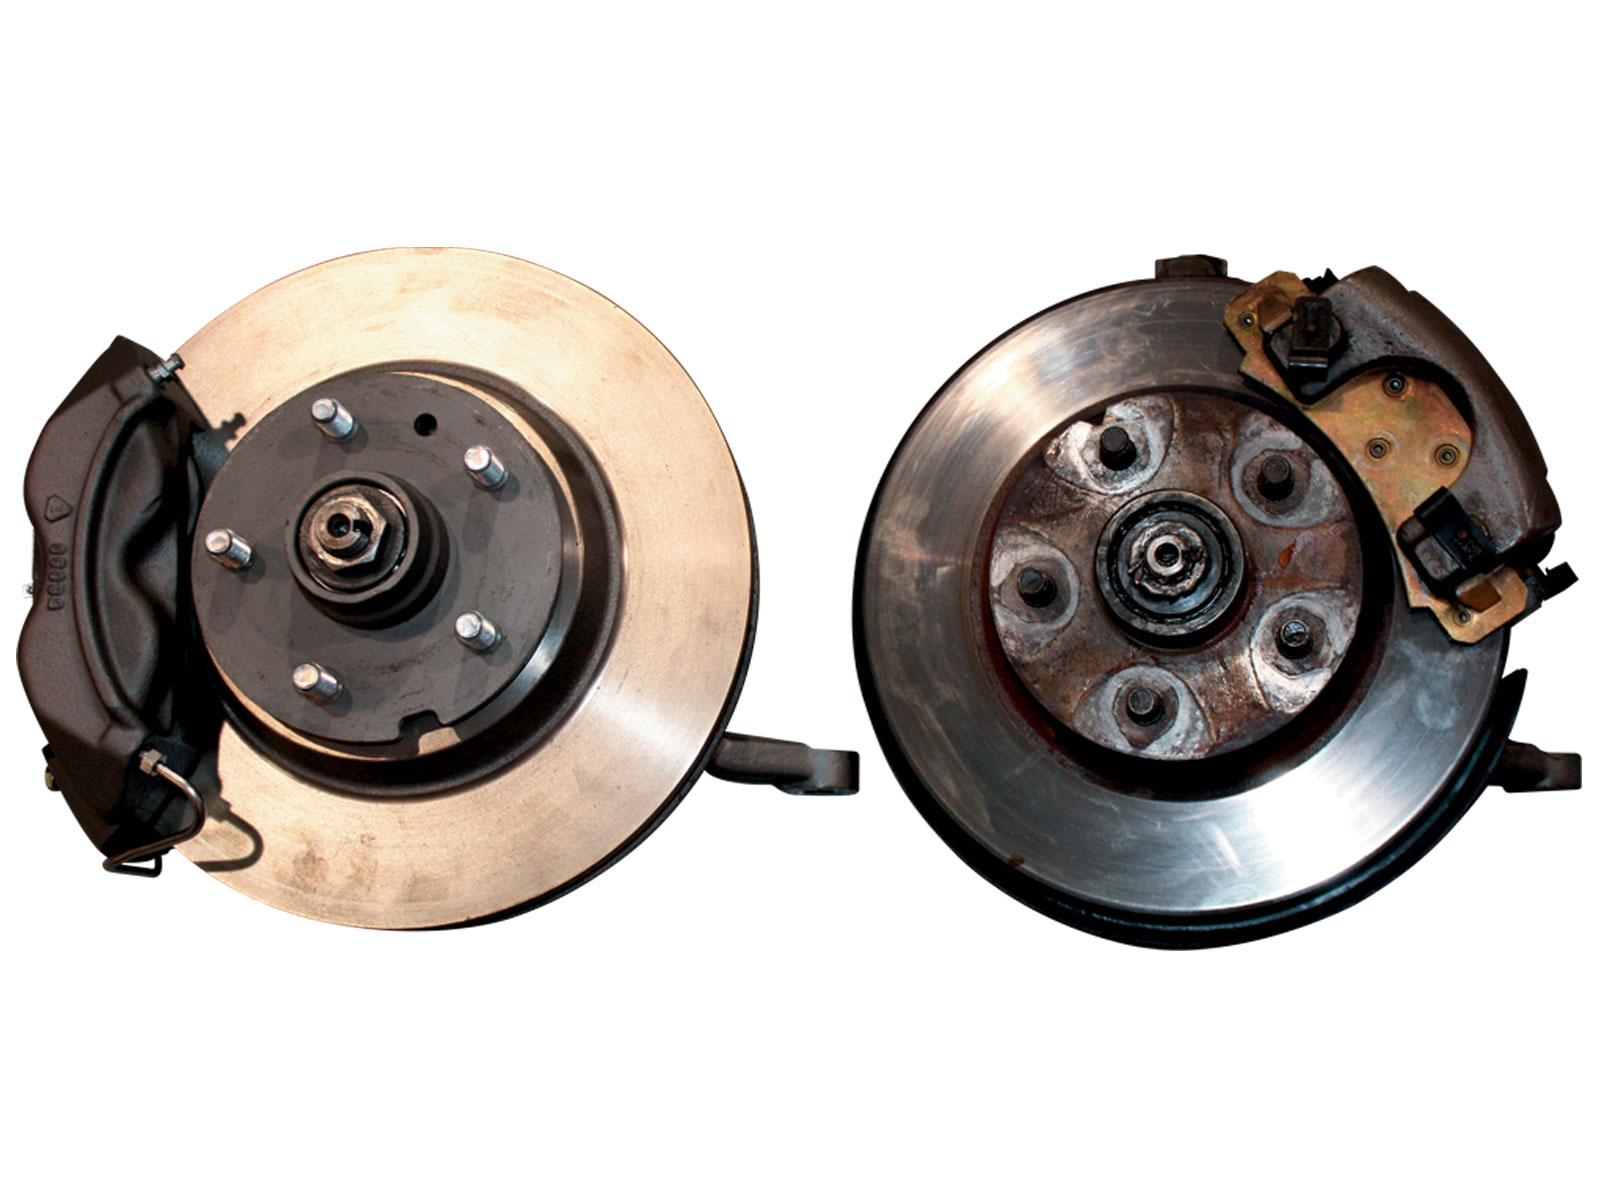 1969 Ford Mustang Boss 302 Trans Am Brake Swap Front Brakes Comparison